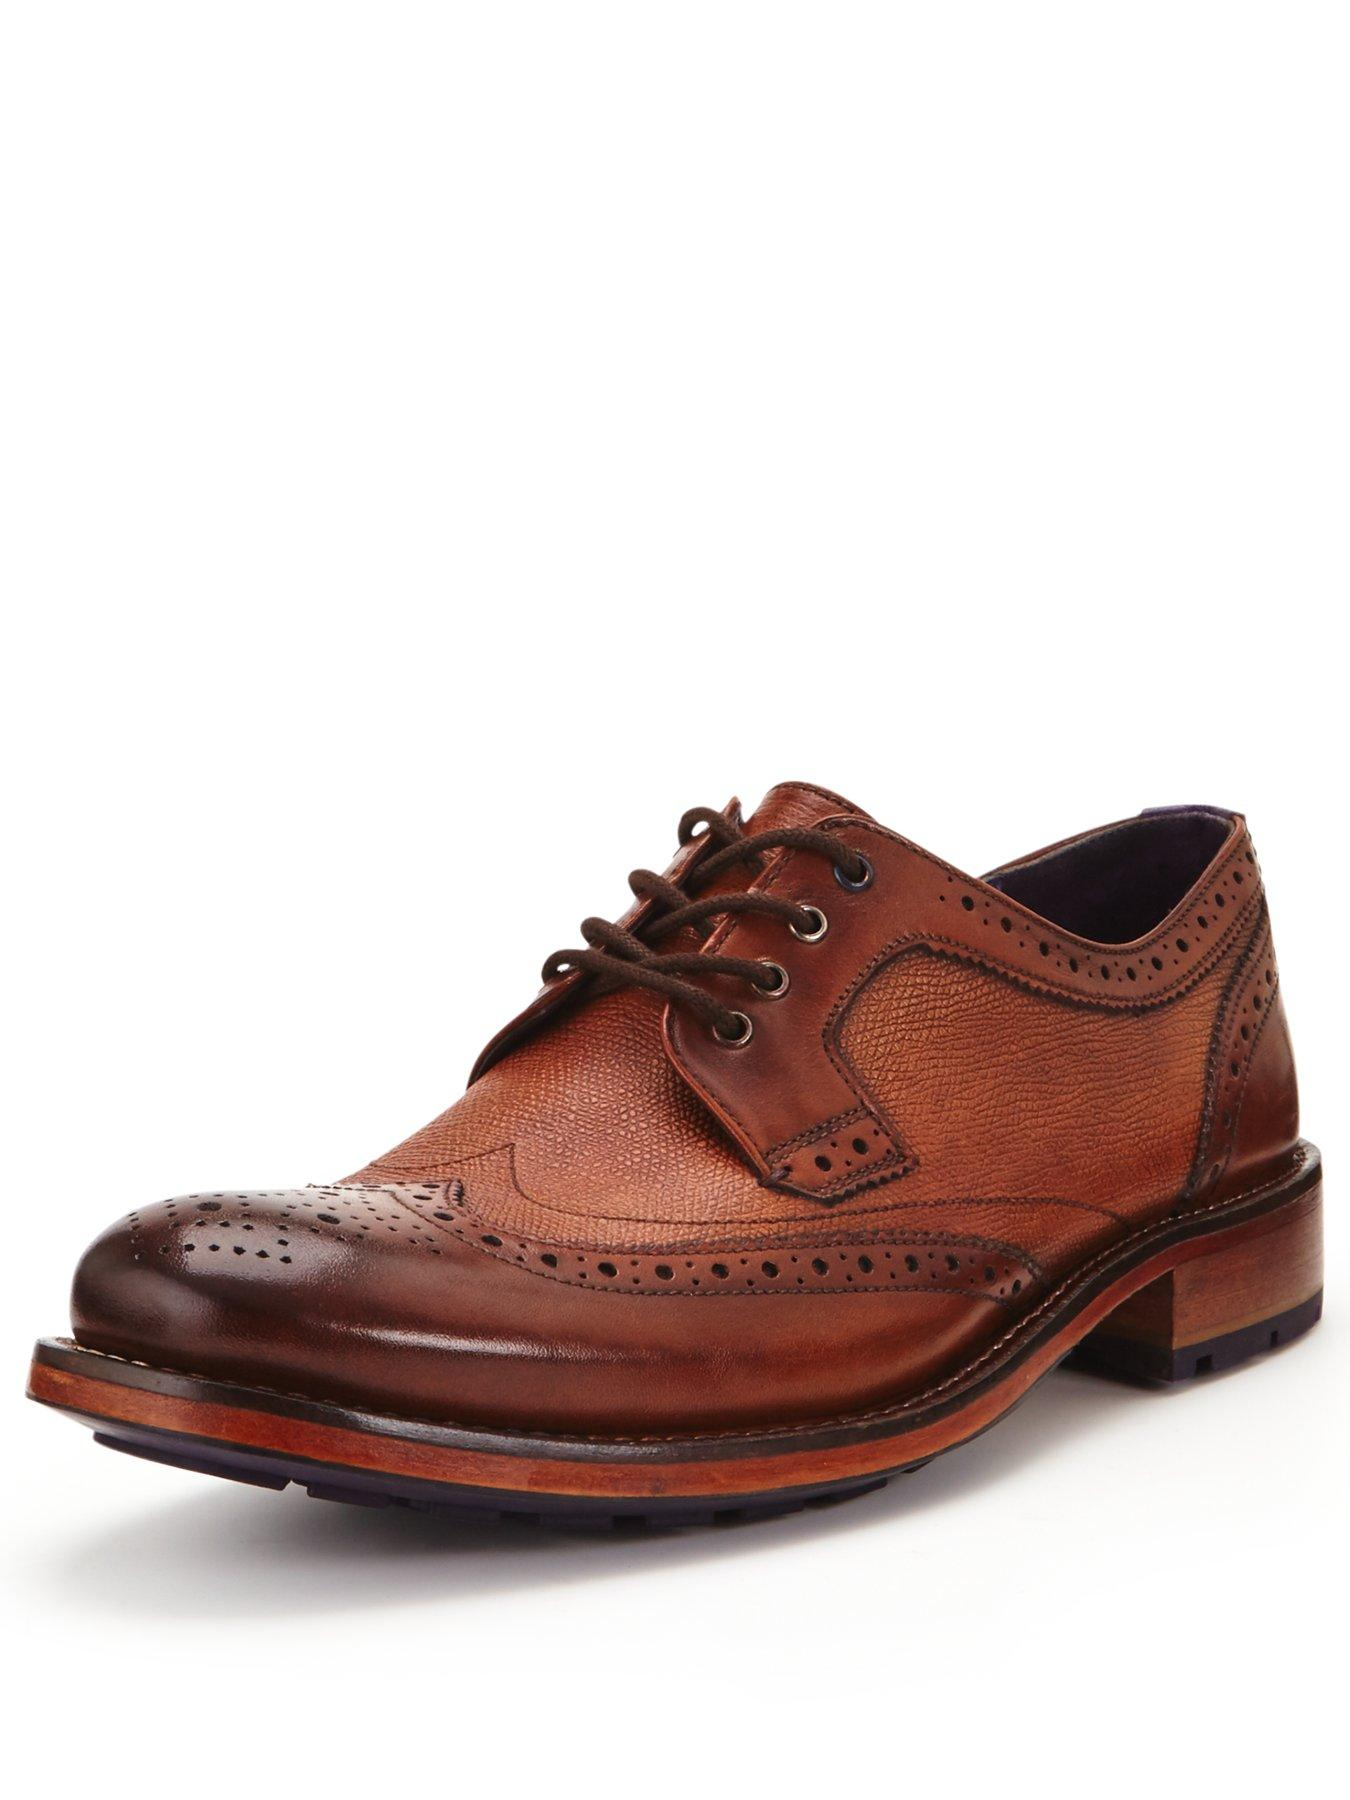 Cassiuss 4 Ted Baker ZyvH0C